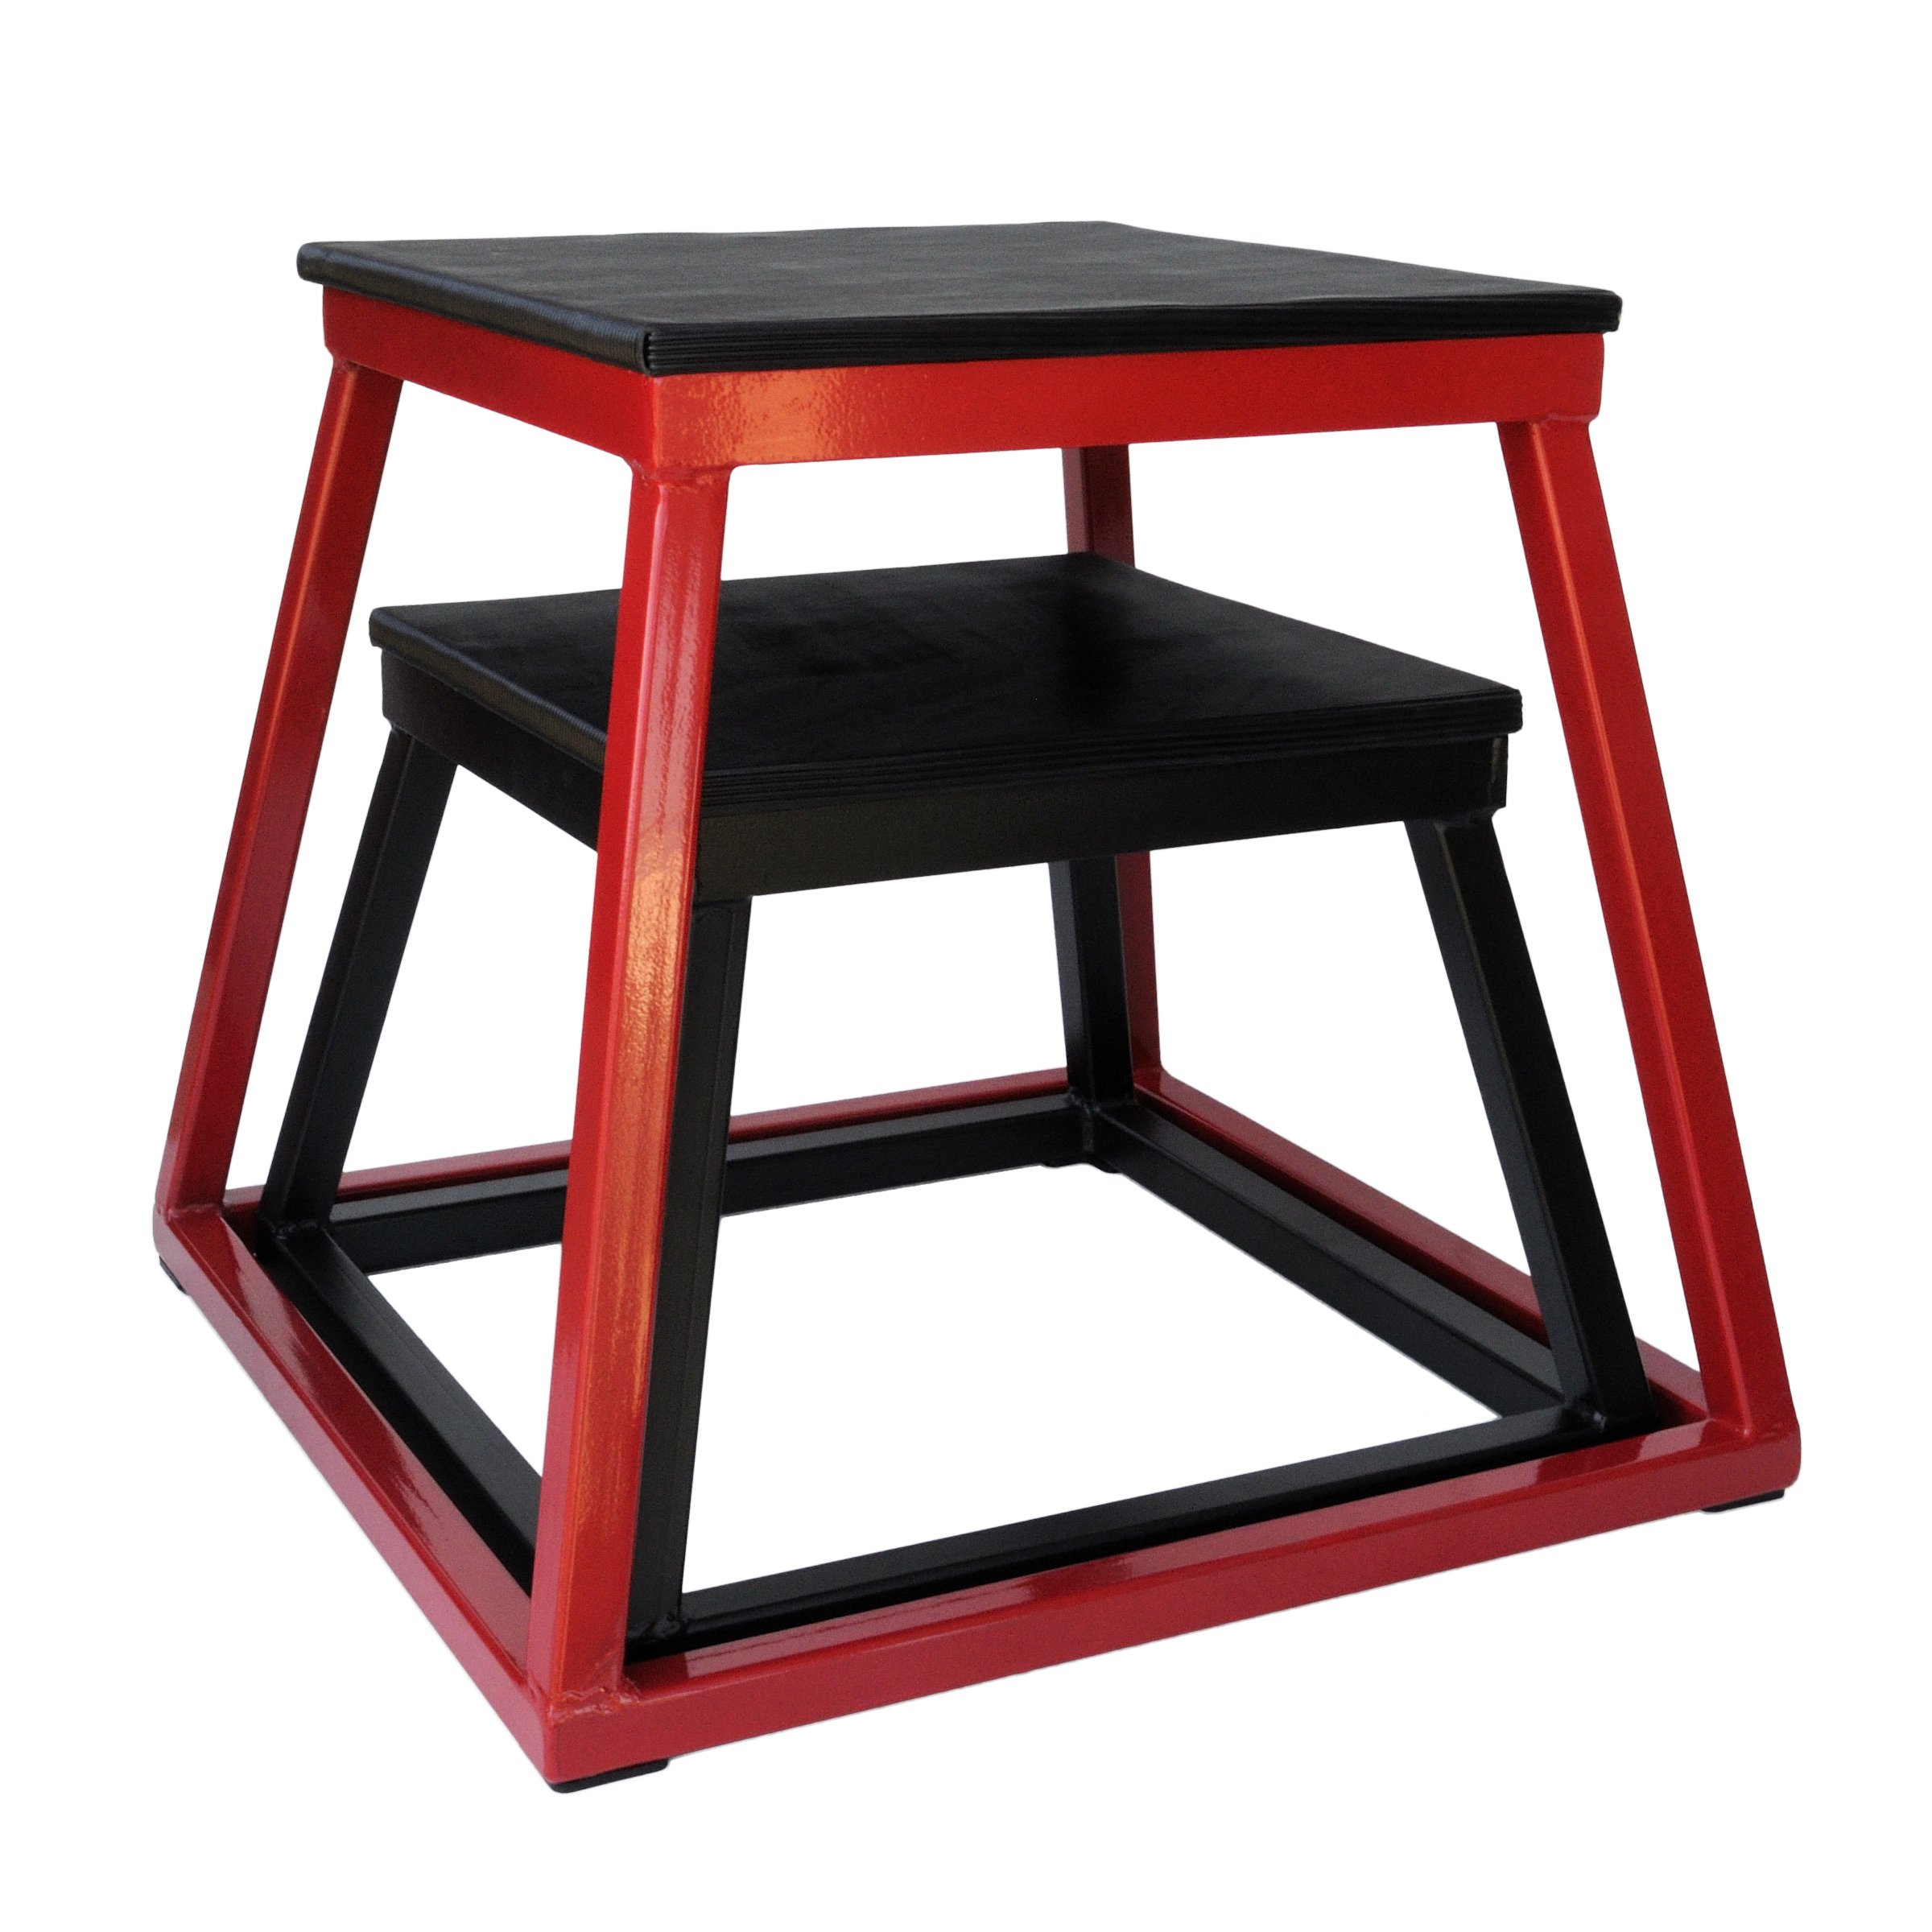 Ader 12'', 18'' Plyo Boxes (Black + Red)